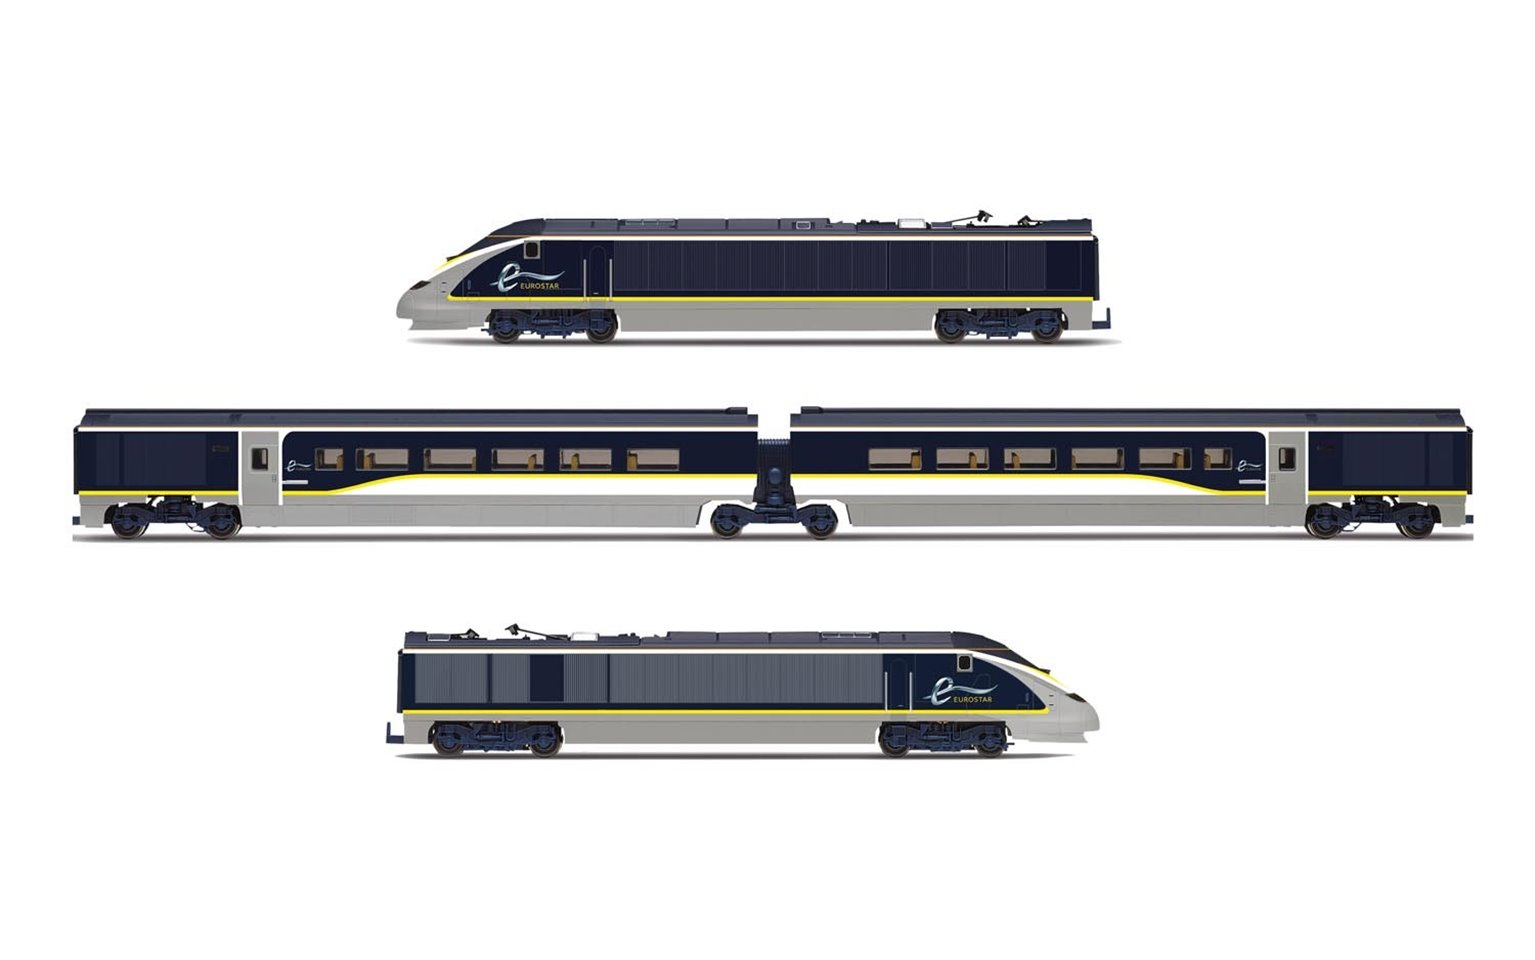 Eurostar, Class 373/1 e300 Train Pack